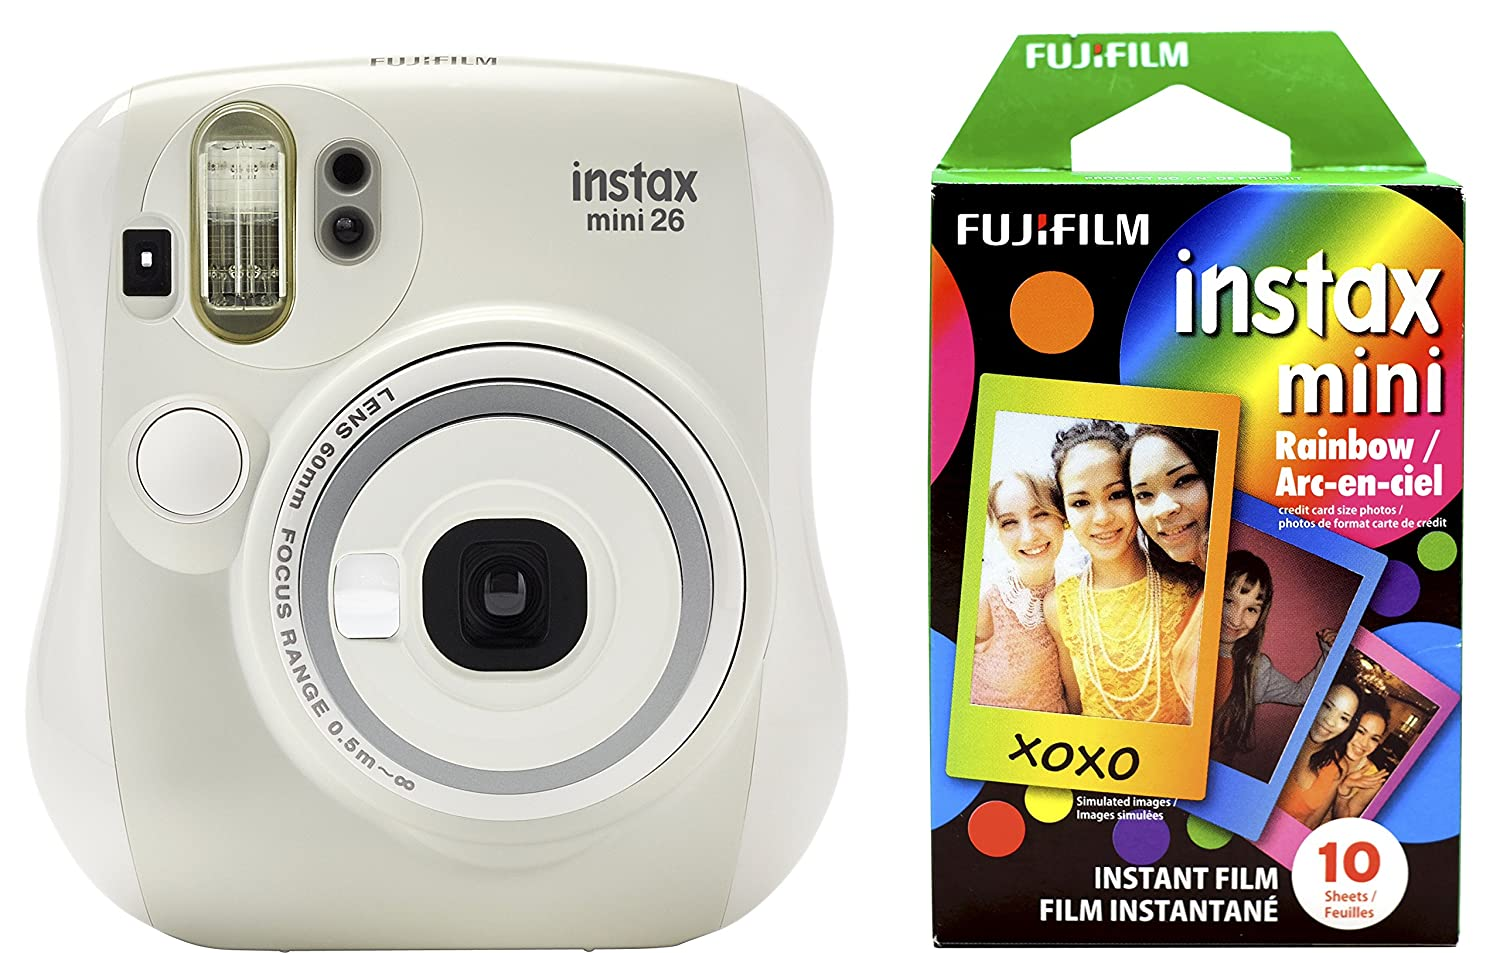 Amazon.com : Fujifilm Instax Mini 26 + Rainbow Film Bundle - White ...